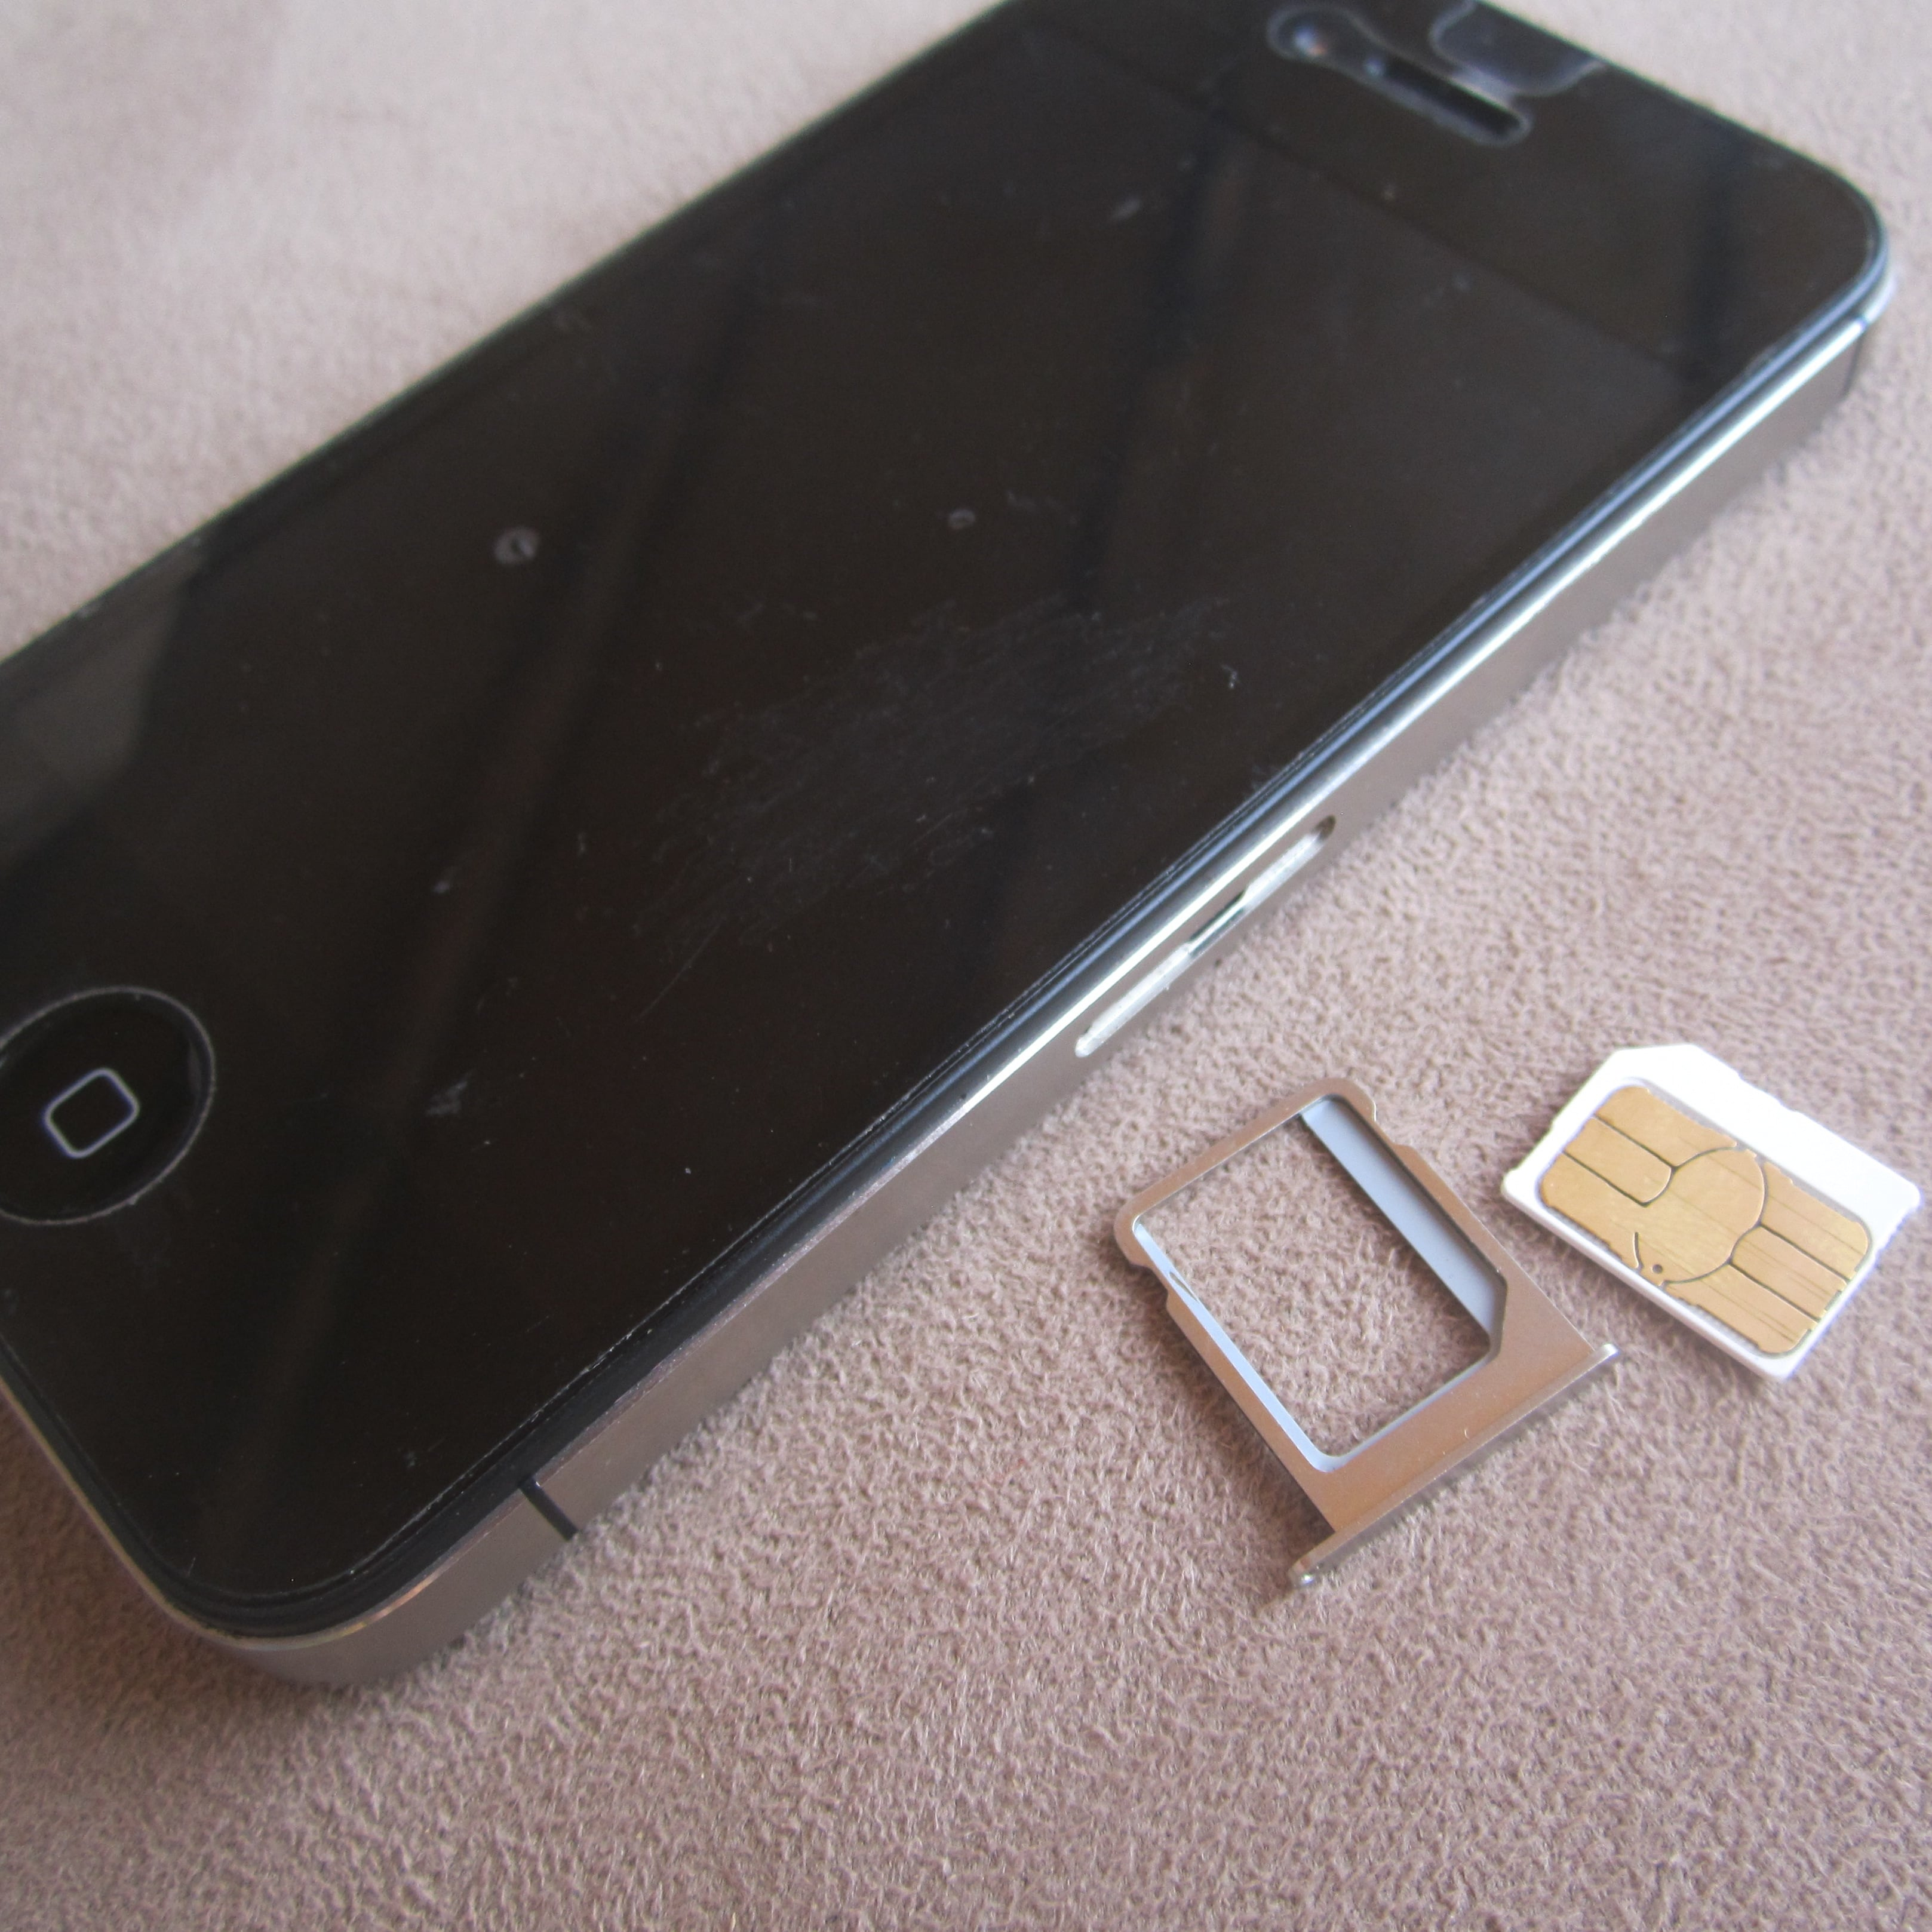 Iphone Sim Card Slot With Micro Sim Card